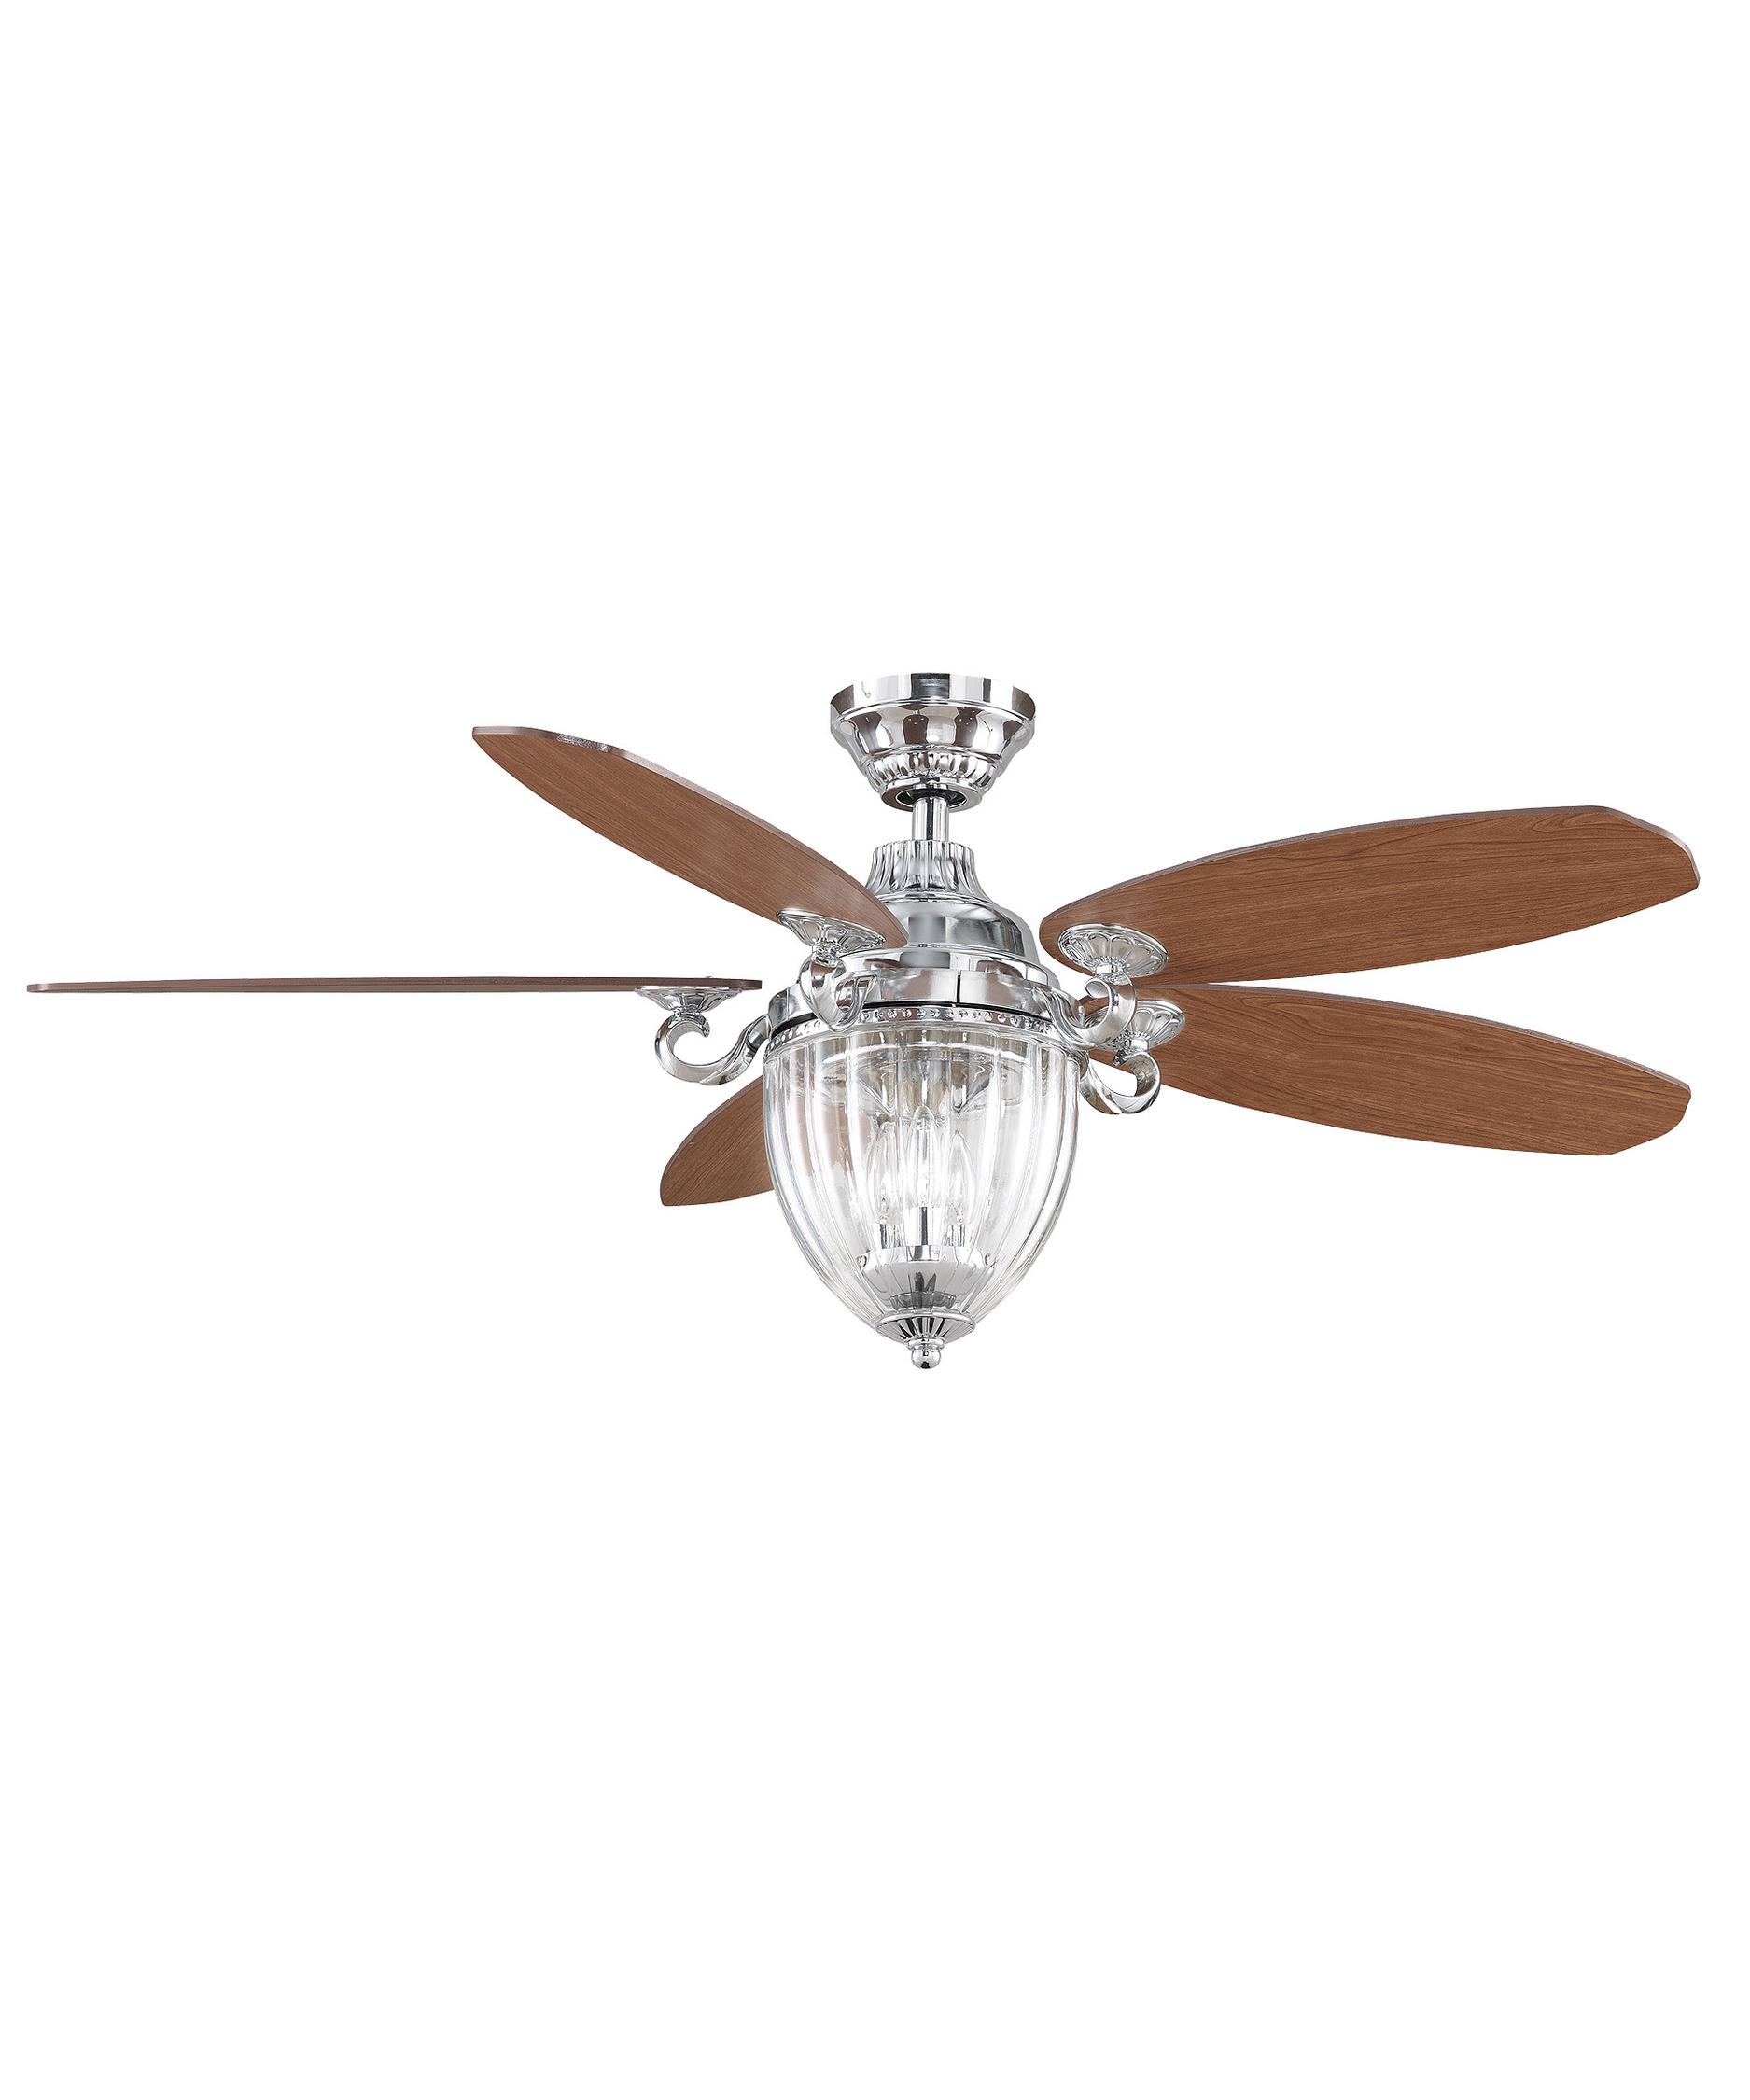 Murray Feiss Ceiling Fan Light Kit: Fanimation FP7953 Stonehill 52 Inch Ceiling Fan With Light